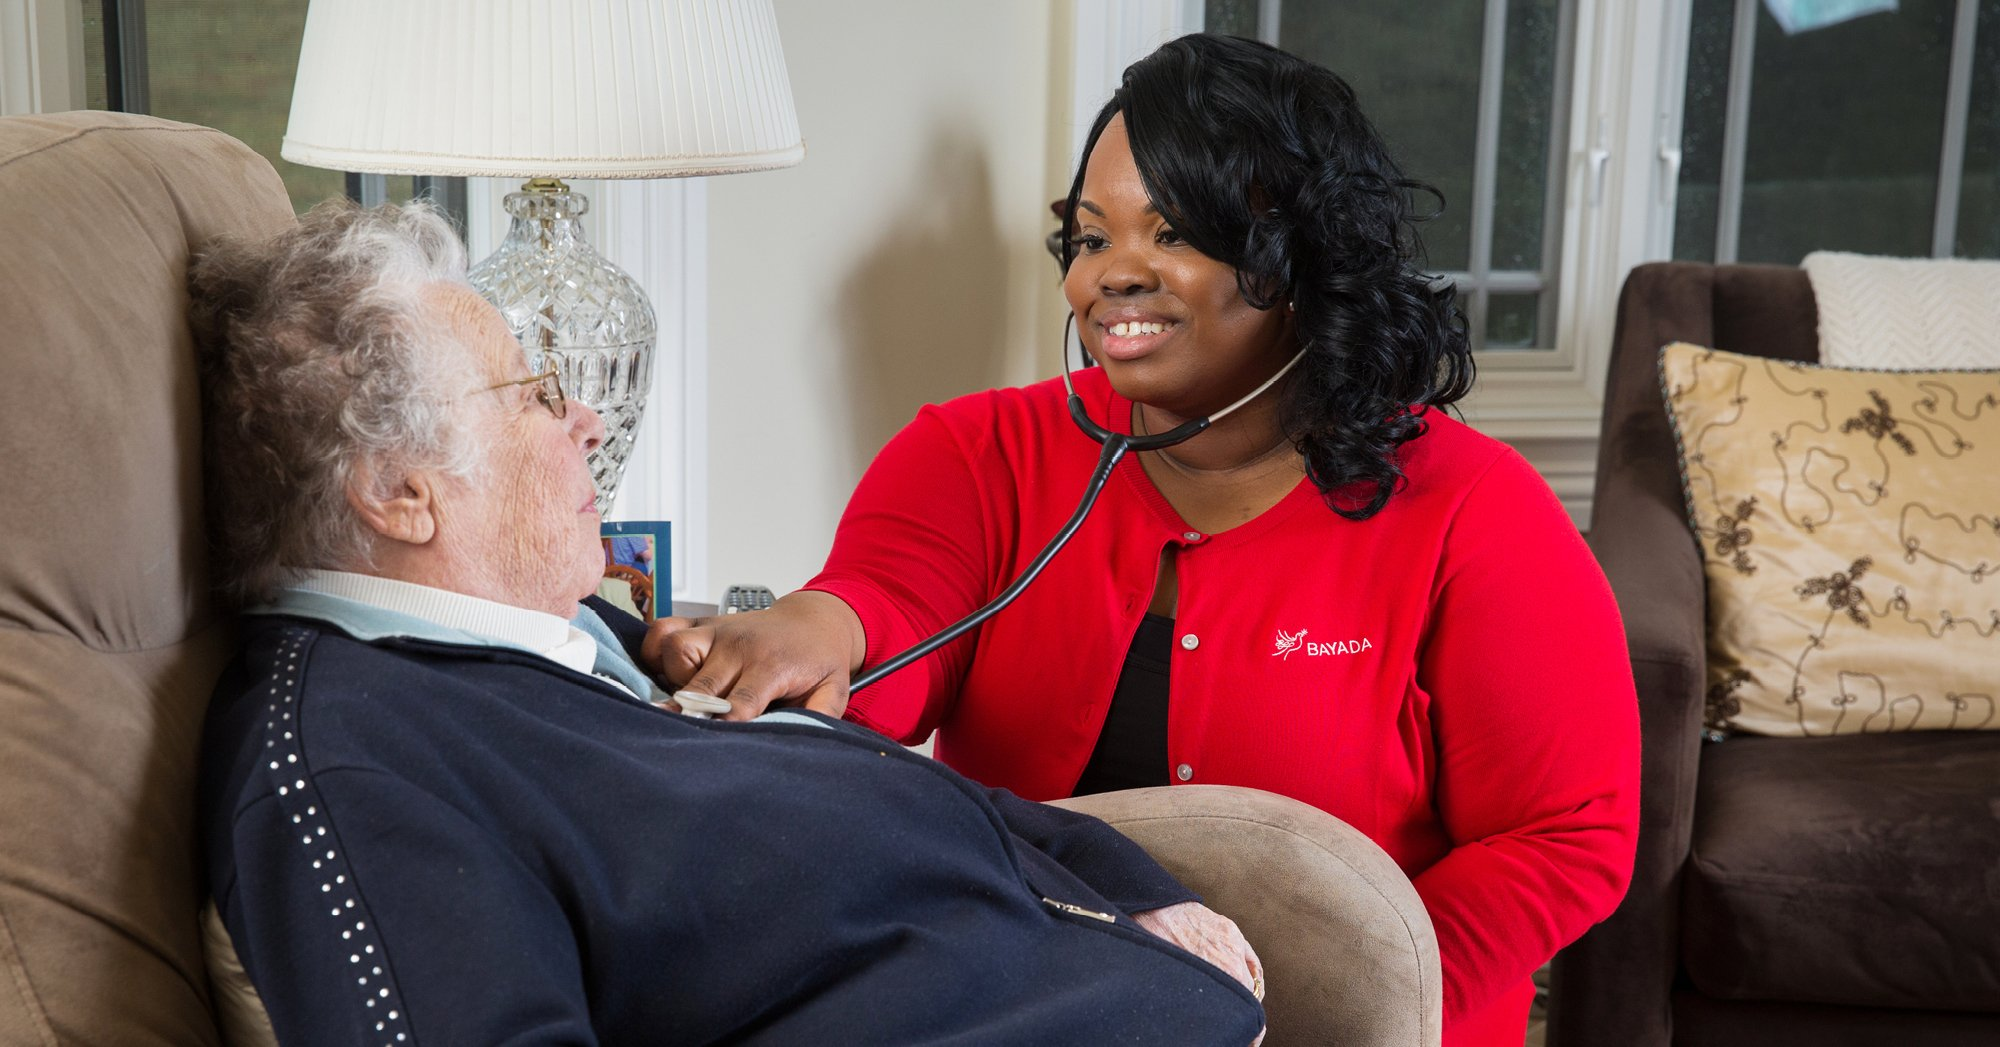 Day in the Life of a Home Care Nurse